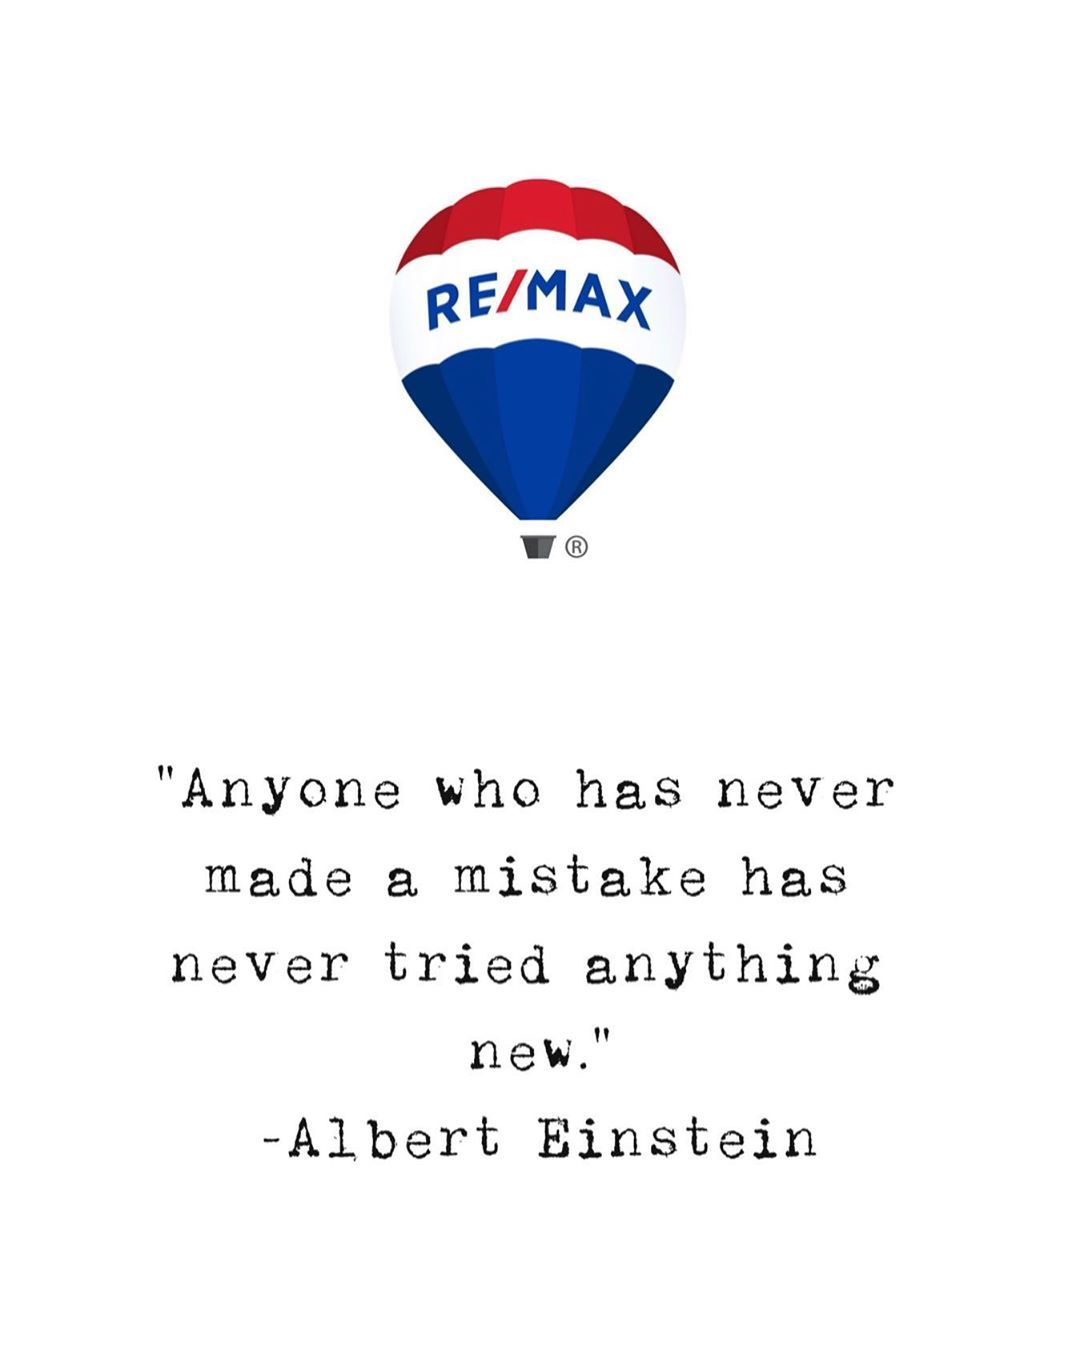 Check out our private Real Estate Mastermind with 18,600+ agents! Click the photo for more info :) M A K E M I S T A K E S . BECAUSE IT SHOWS YOU'RE TRYING SOMETHING NEW . . . . #mistakes #mistakequotes #remax #realestate #realestatenewjersey #remaxfirstrealty #remaxfirstrealtyii #wearefirst #remaxhustle #remaxagent #remaxlife #realestatememes #eastbrunswicknj #cranfordnj #newjersey #luxurylifestyle #luxuryhomes #luxuryrealestate #alberteinstein #homedecor #homesweethome #house #houses #n